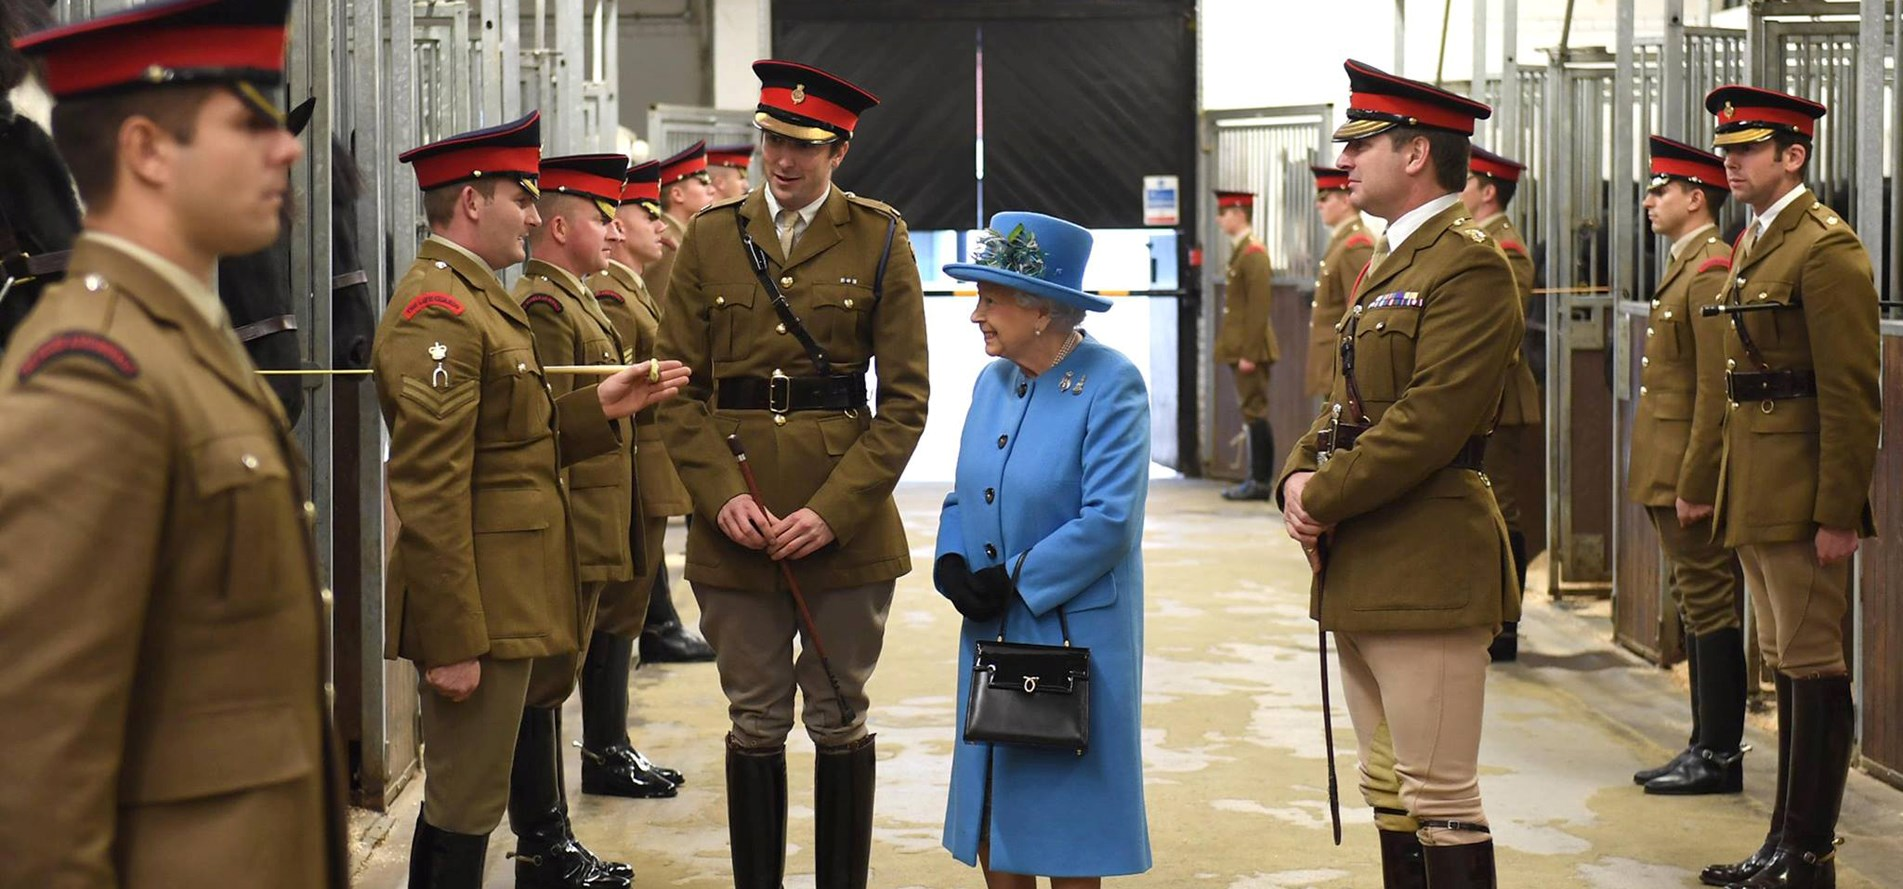 NEWS_Queenvisit_1903x889.jpg